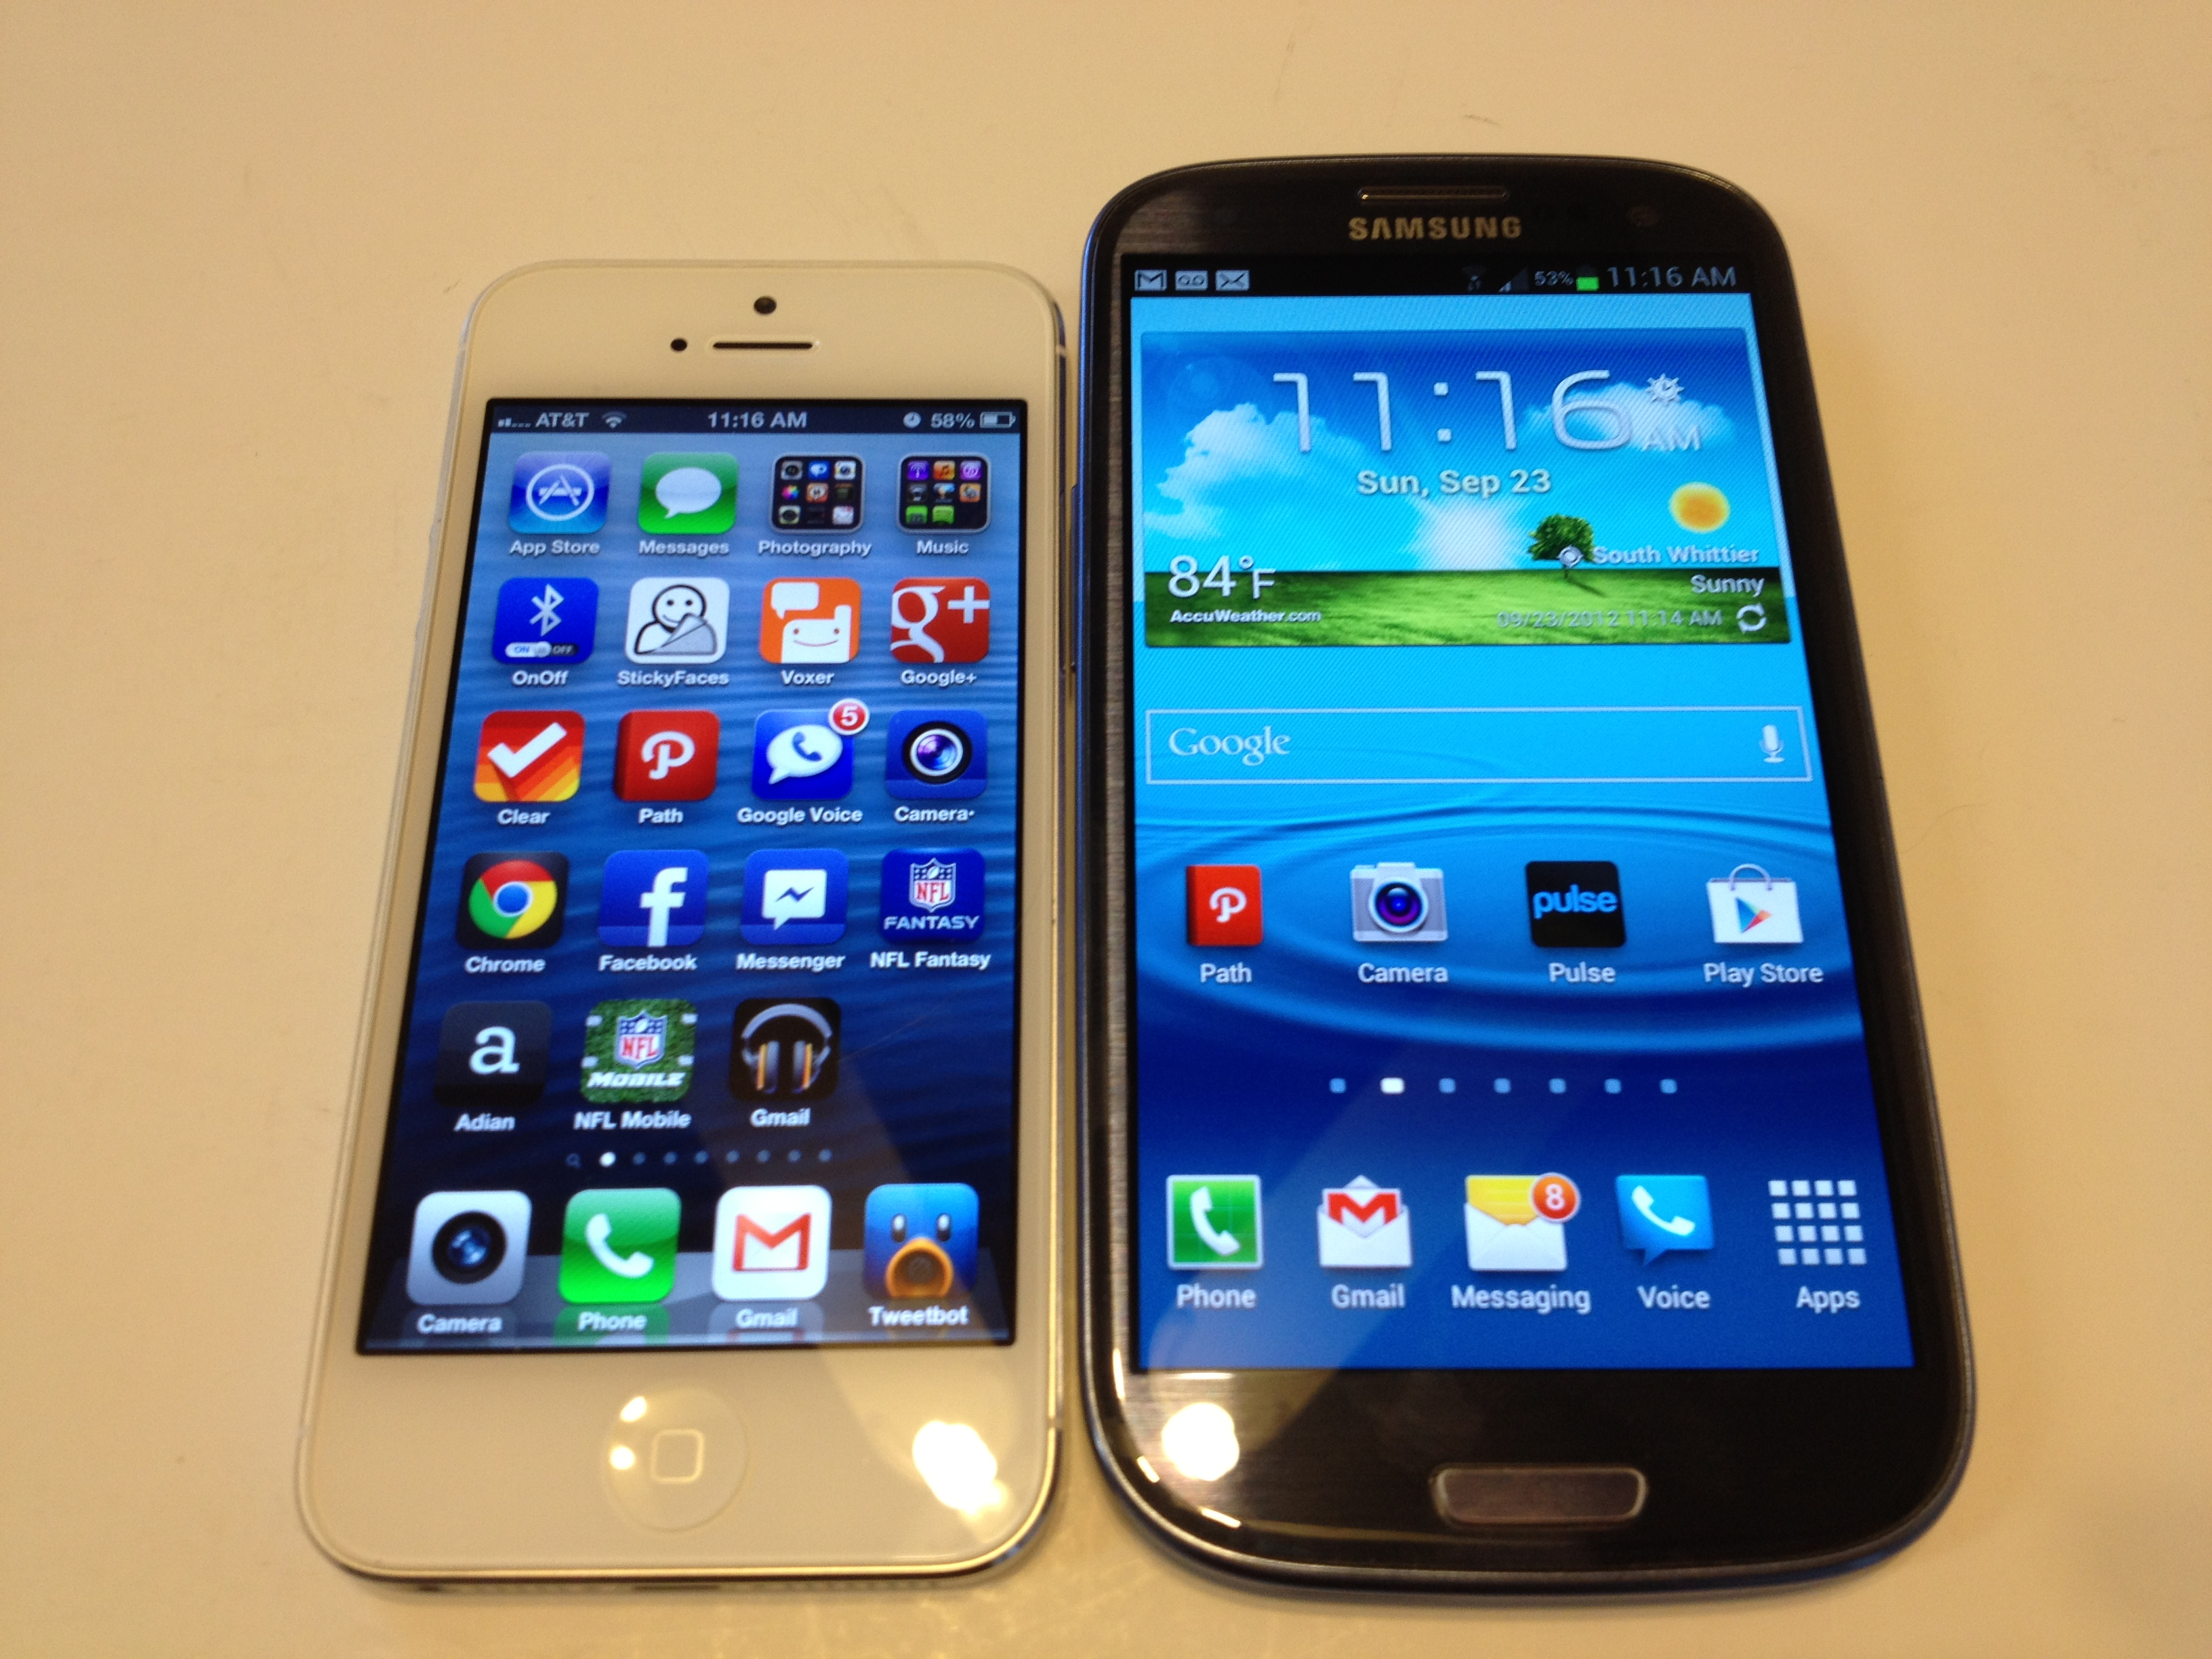 iphone 5 vs galaxy s3 essay Galaxy s vs apple iphone essay samsung galaxy s4 versus apple iphone 5s introduction apple and samsung has been rivals in the mobile industry for years from lawsuits to fanfare to straight up name-calling these two mobile giants have had it out for each other for a while now.